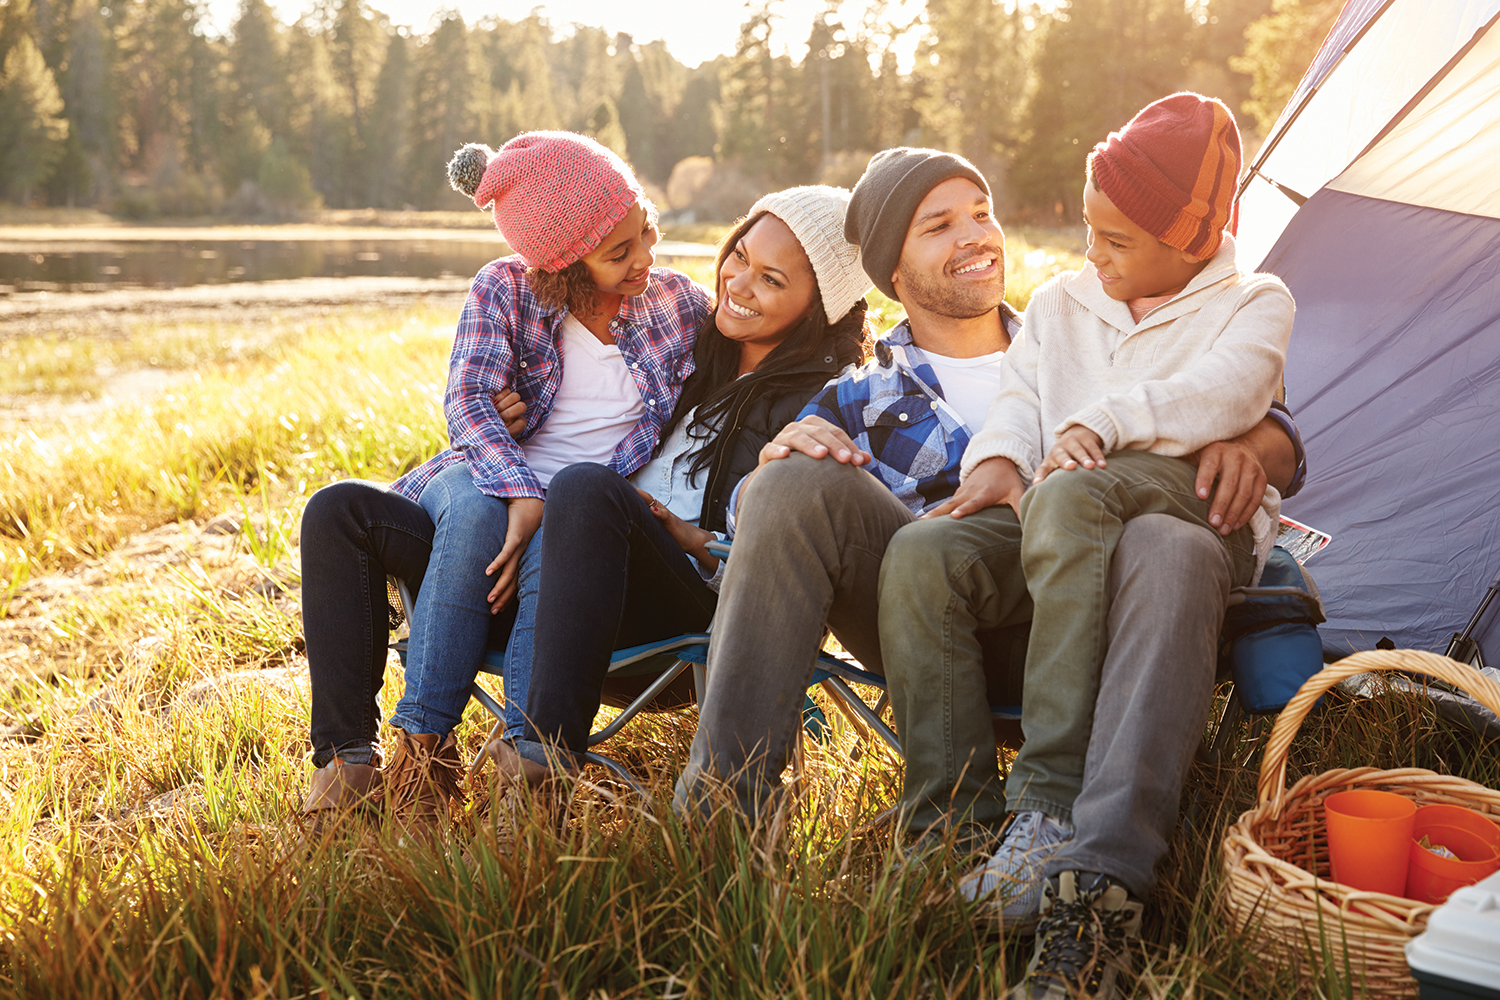 A first-timer's guide to camping with the whole family